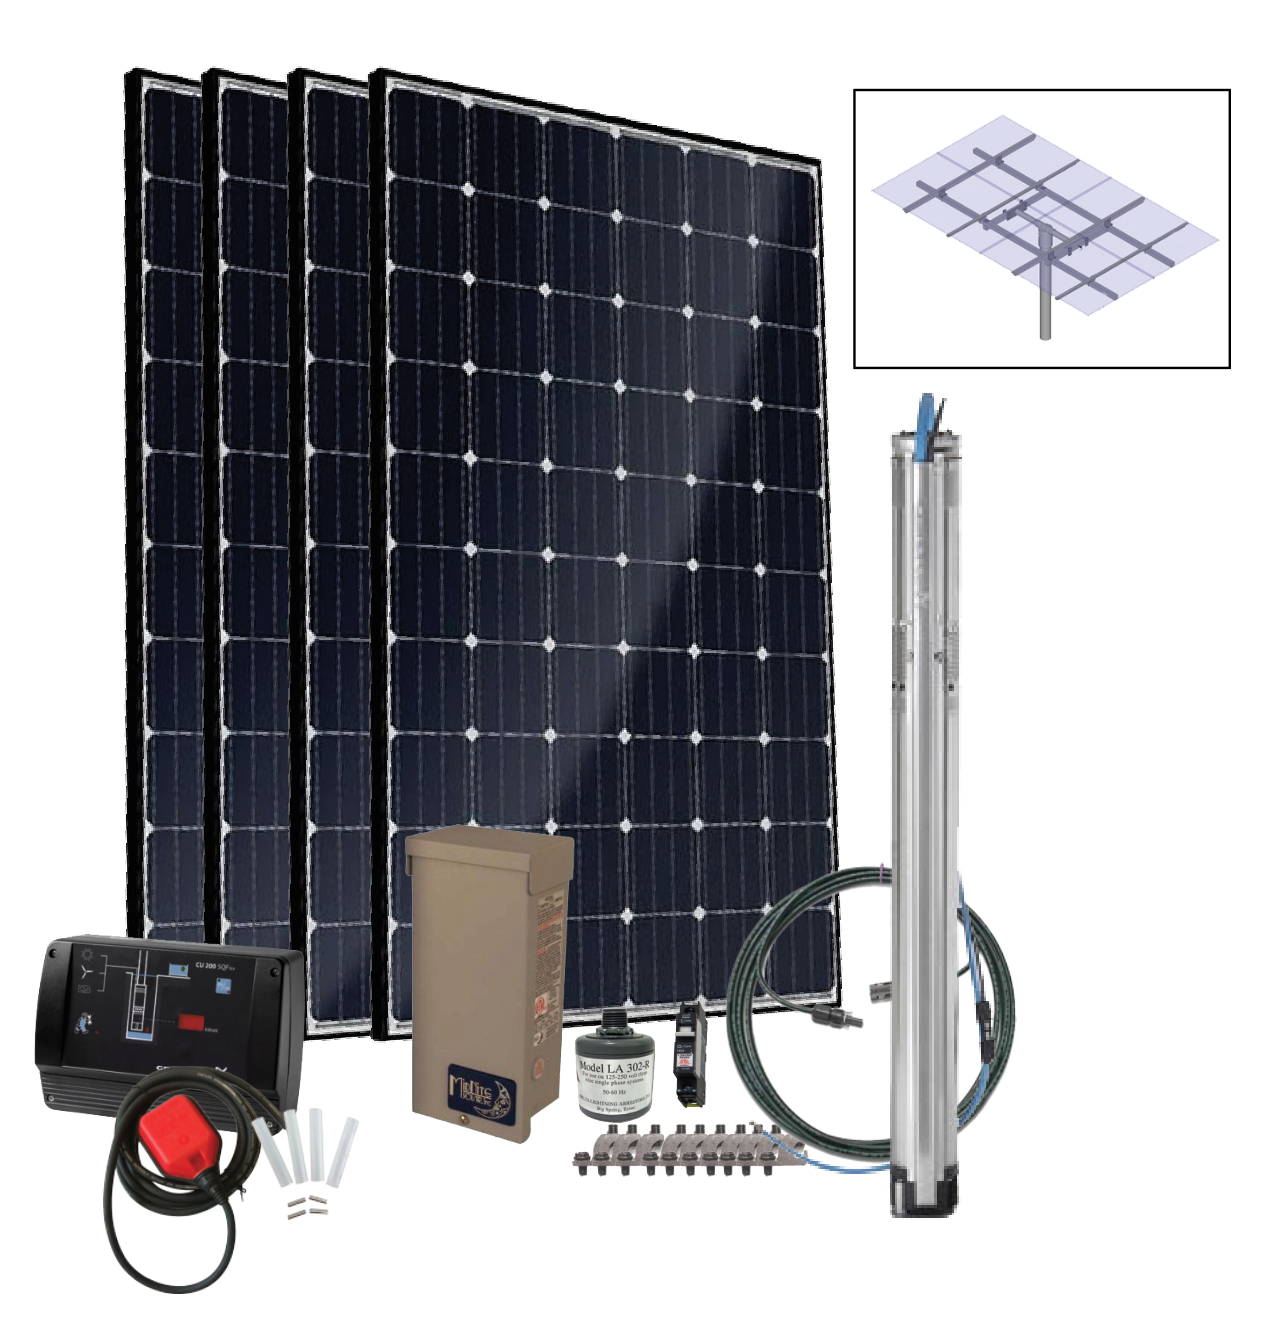 Grundfos SQFlex Pre-designed Solar Water Pumping Kit using 11 sqf-2 pump 12 to 4.5 gpm, 15 to 395 feet lift